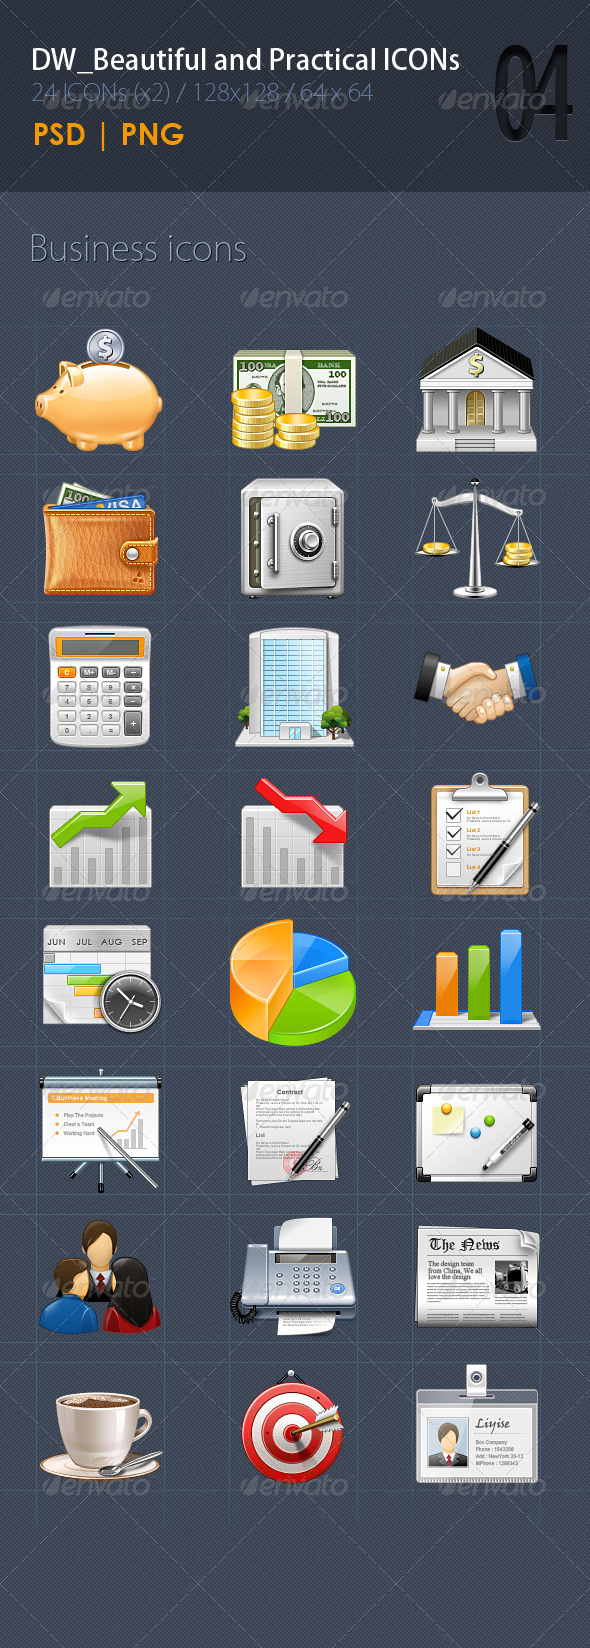 GraphicRiver 24 Beautiful&Practical ICON4 5543761